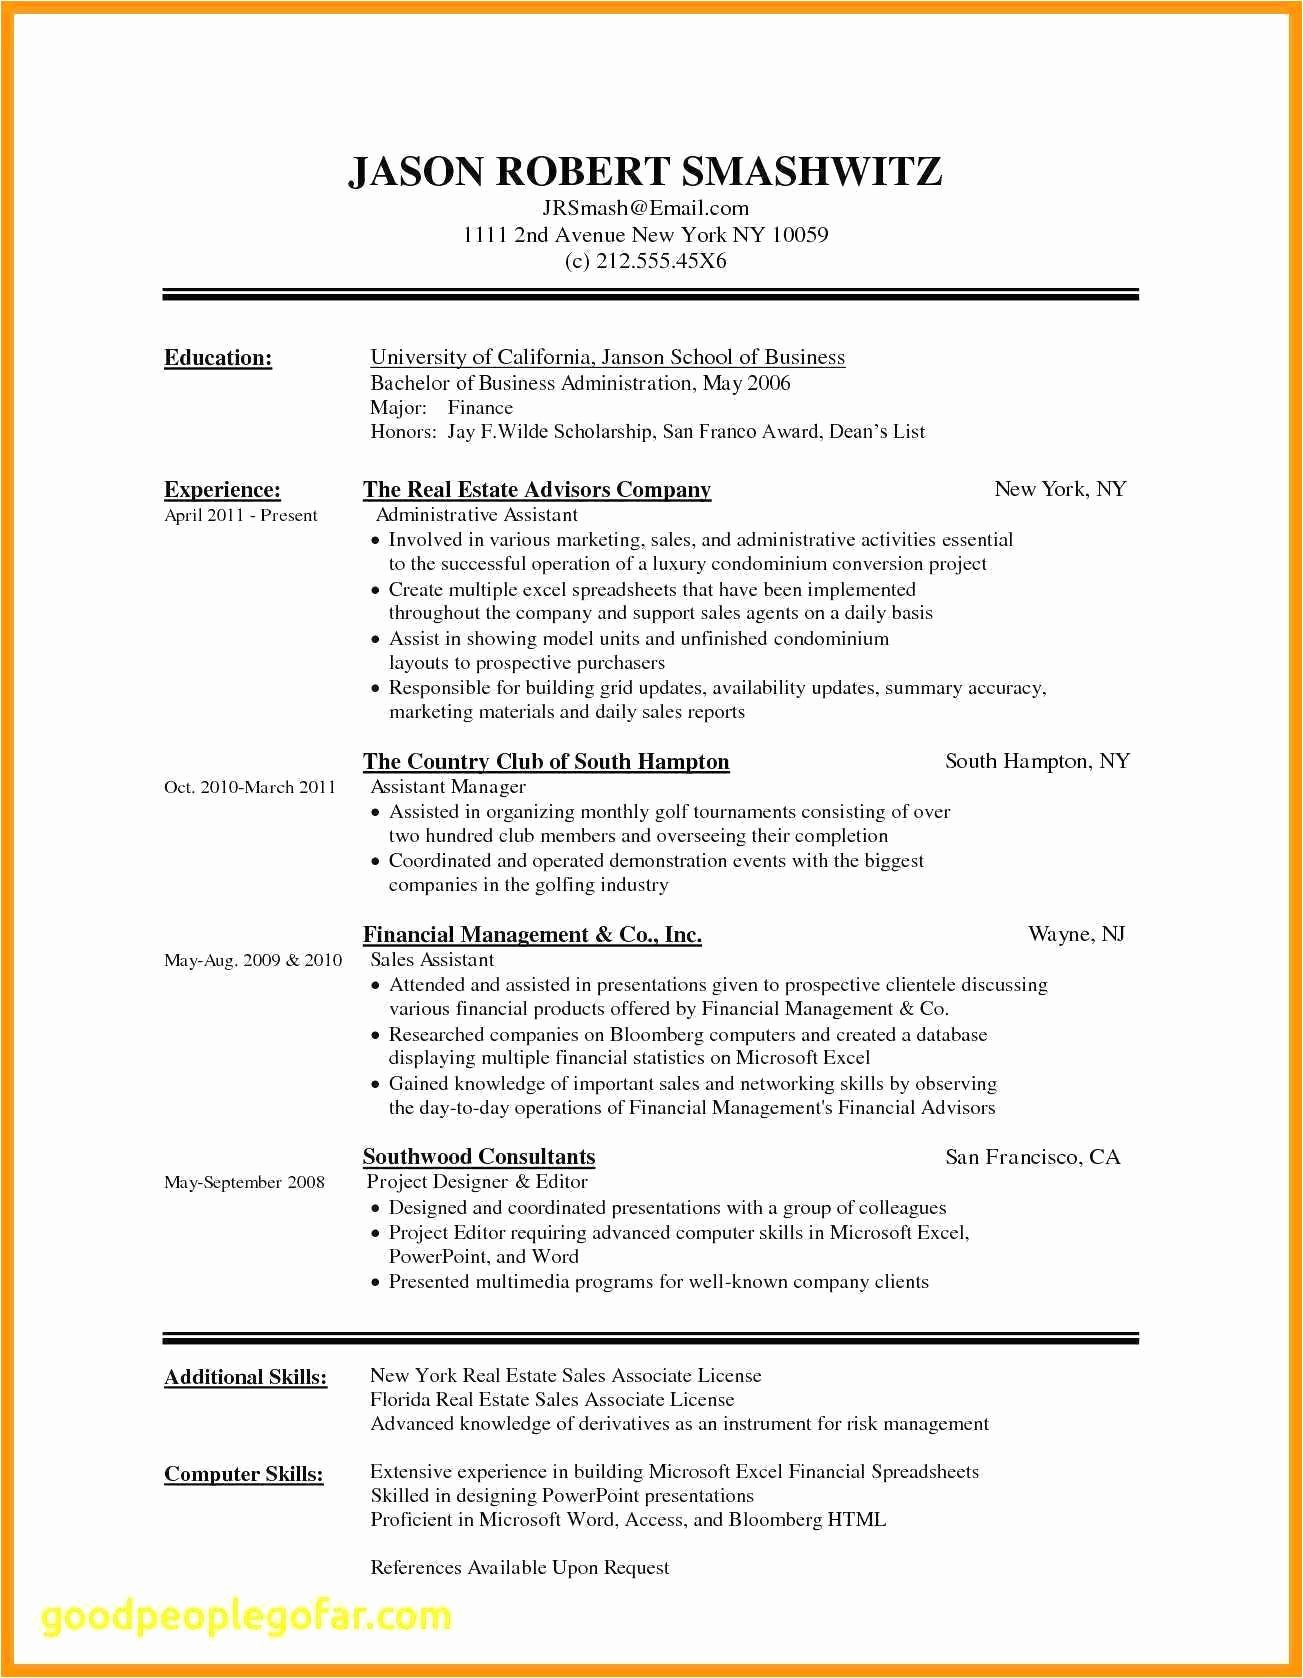 Resume Templates Word 2013 Free Download Teacher Resume